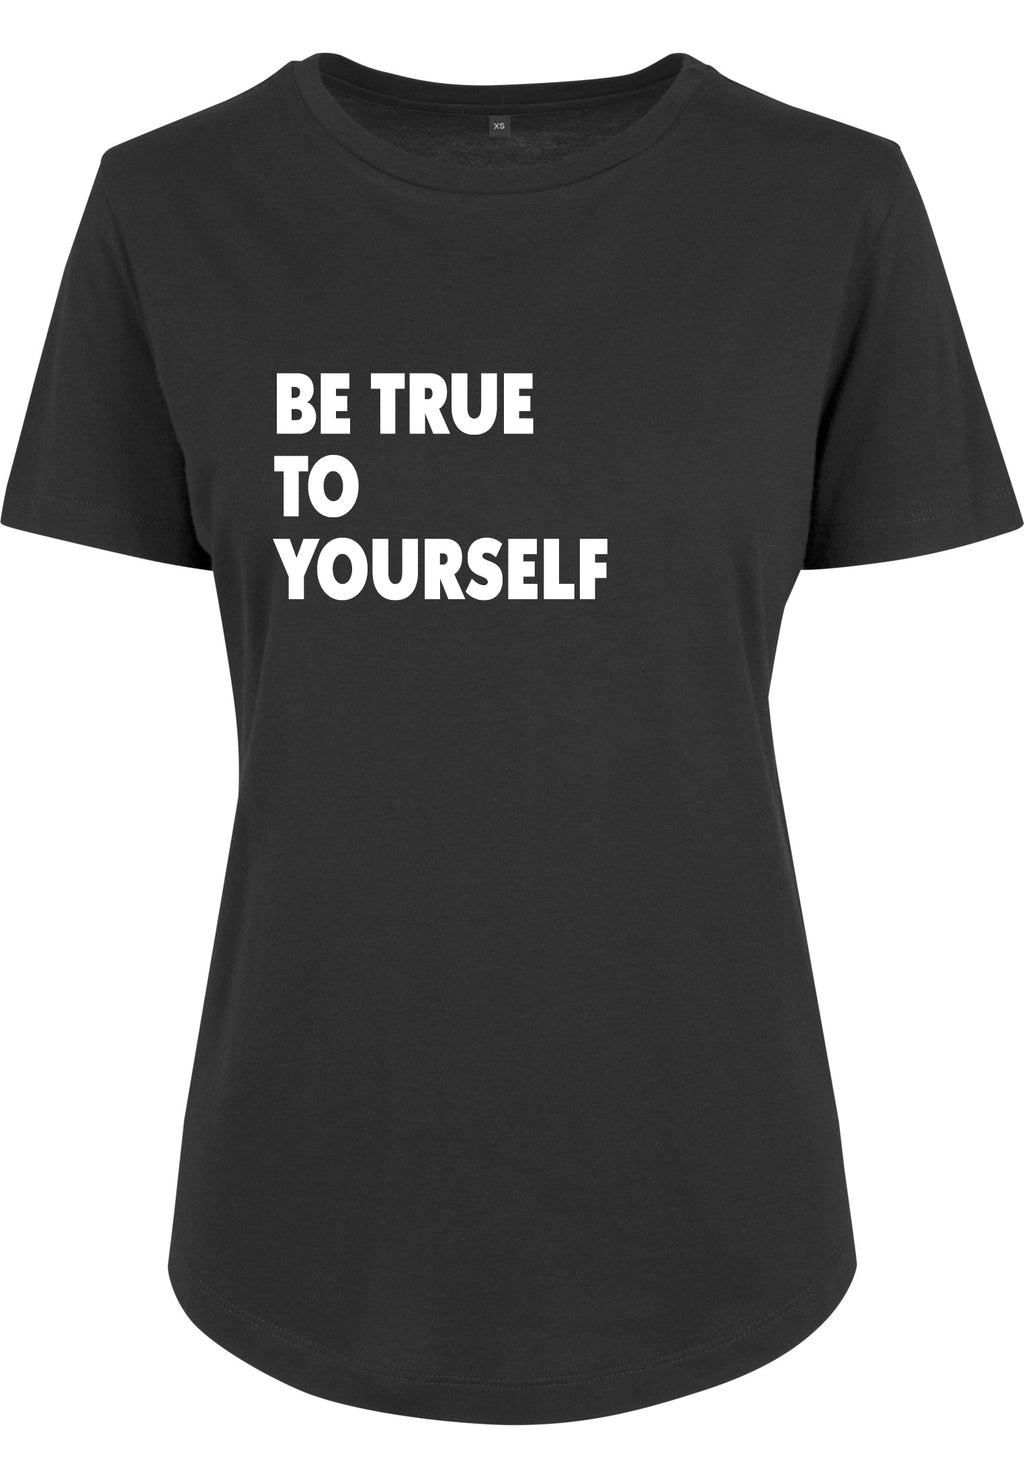 Womens BE TRUE Fitted Tee (Black)